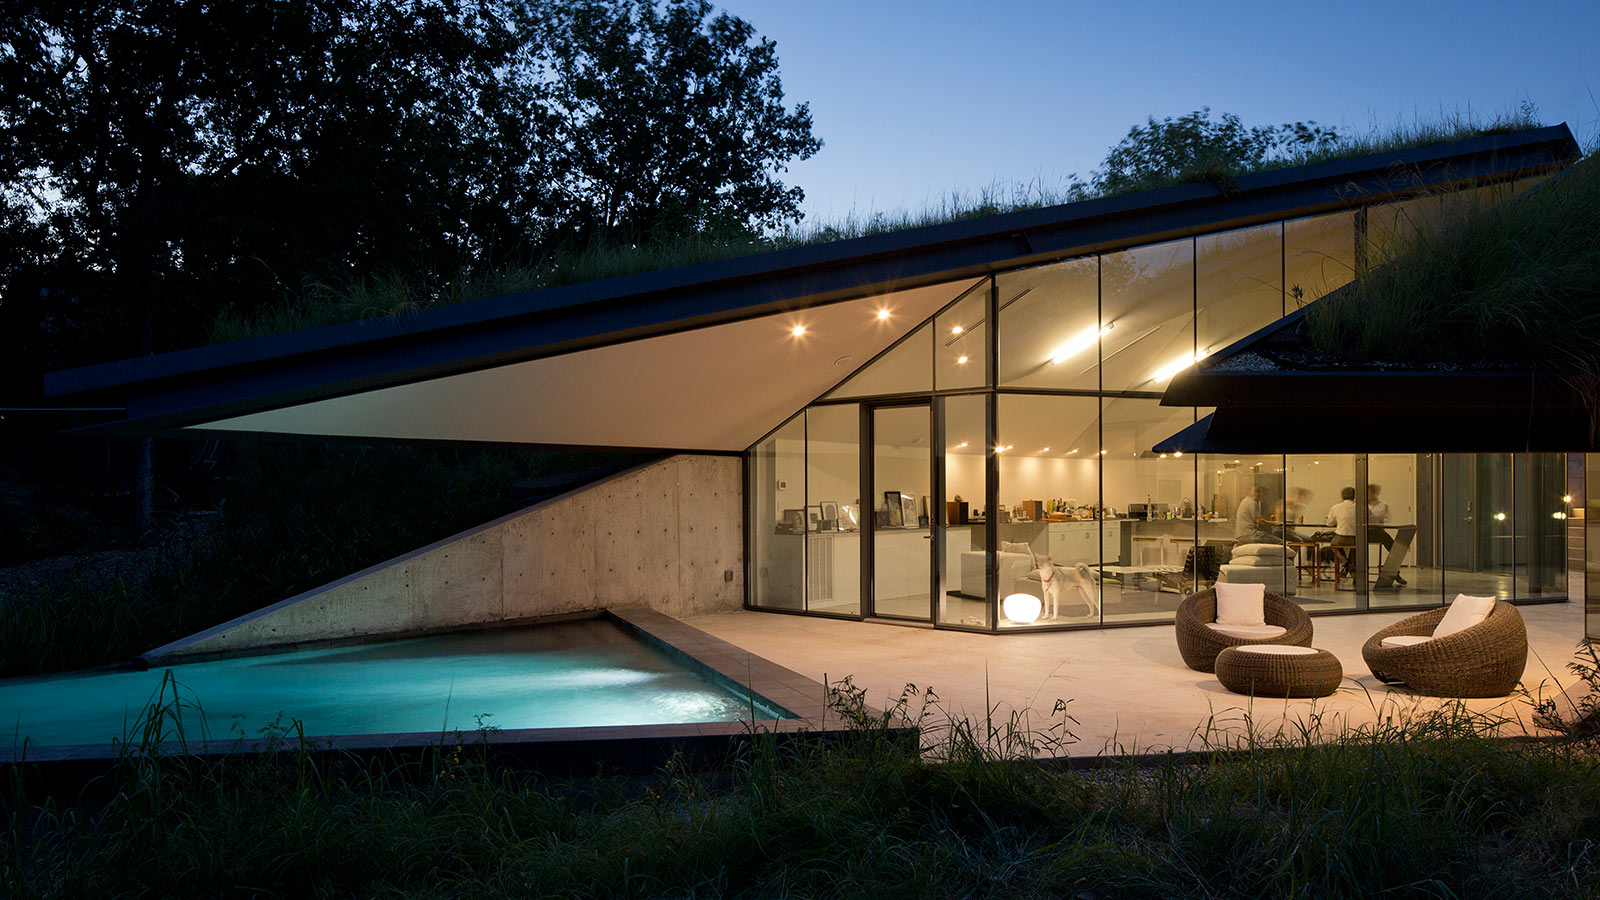 Futuristic House Amazing Edgeland Residence A Futuristic House With A Smart Pool Fit For A Design Decoration